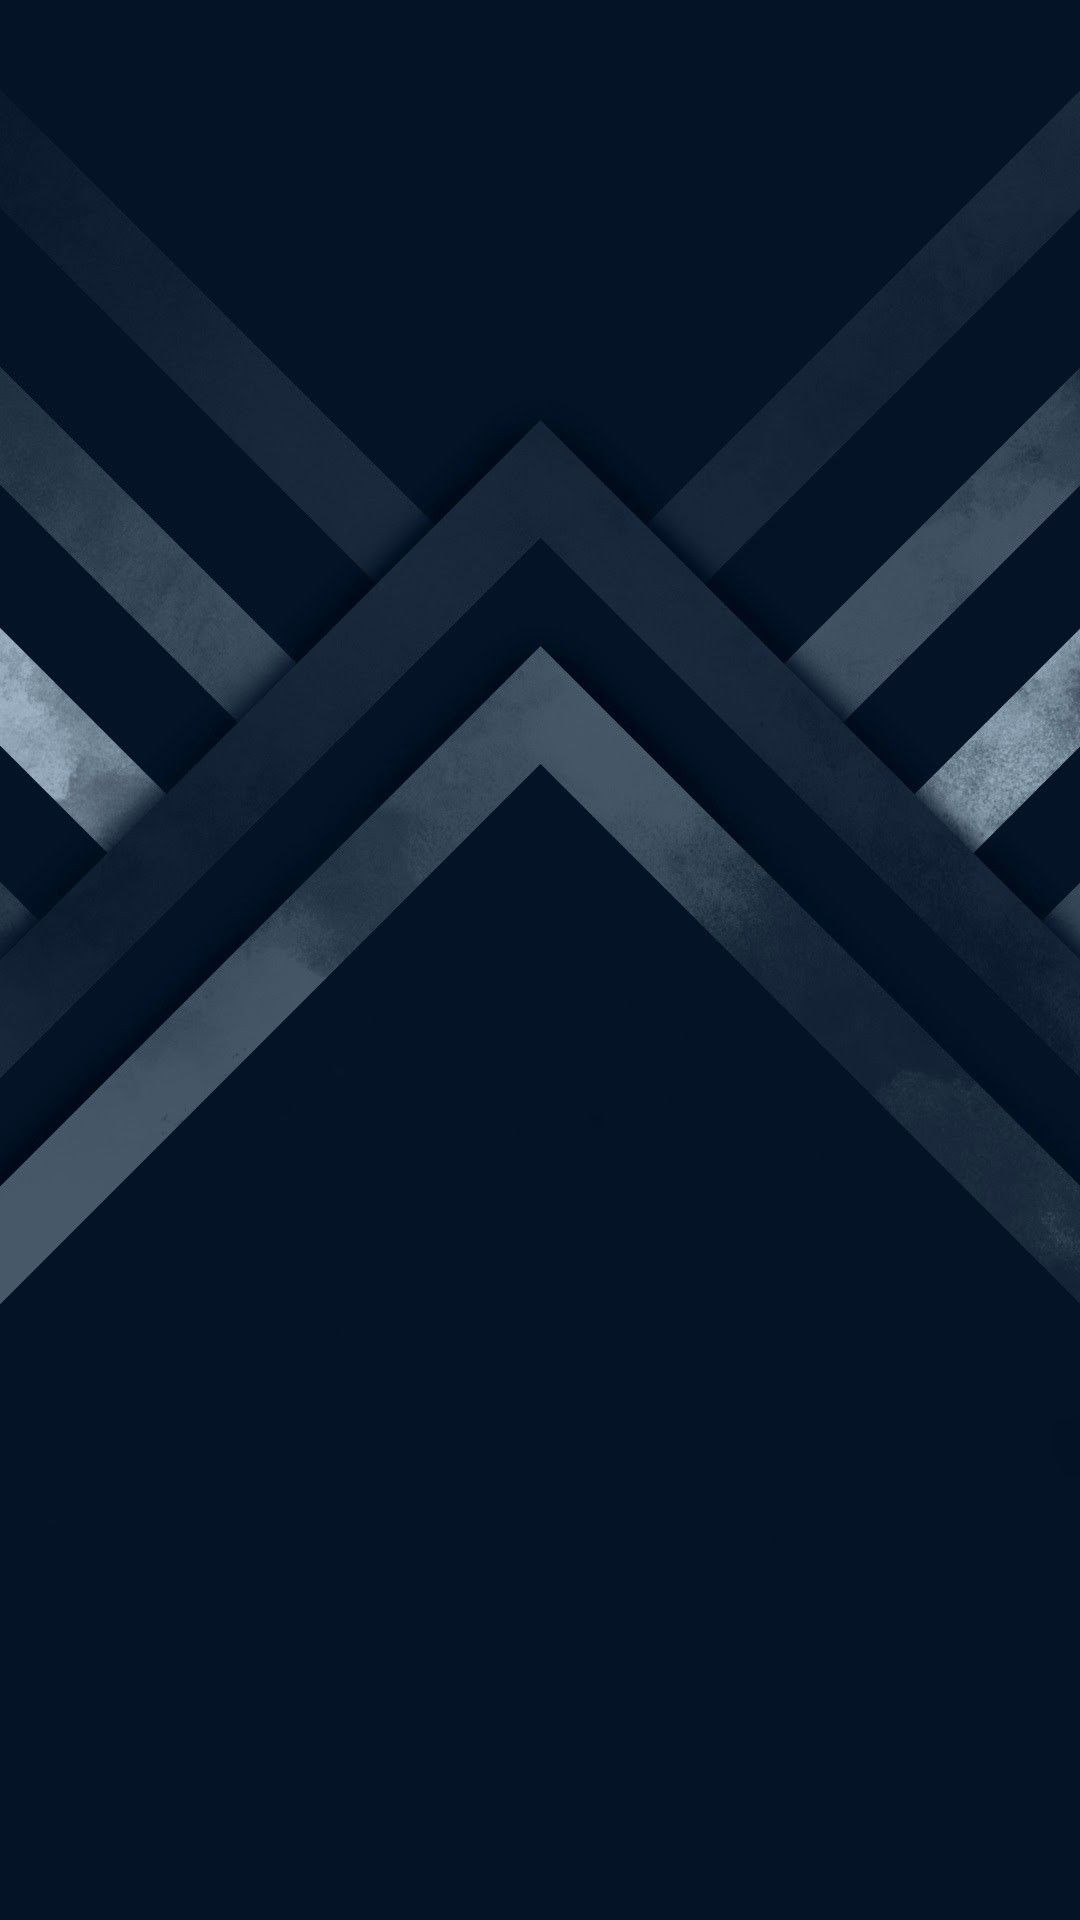 unique wallpaper mobile wallpaper wallpaper backgrounds iphone wallpapers fantastic wallpapers geometry abstract art chevron collages